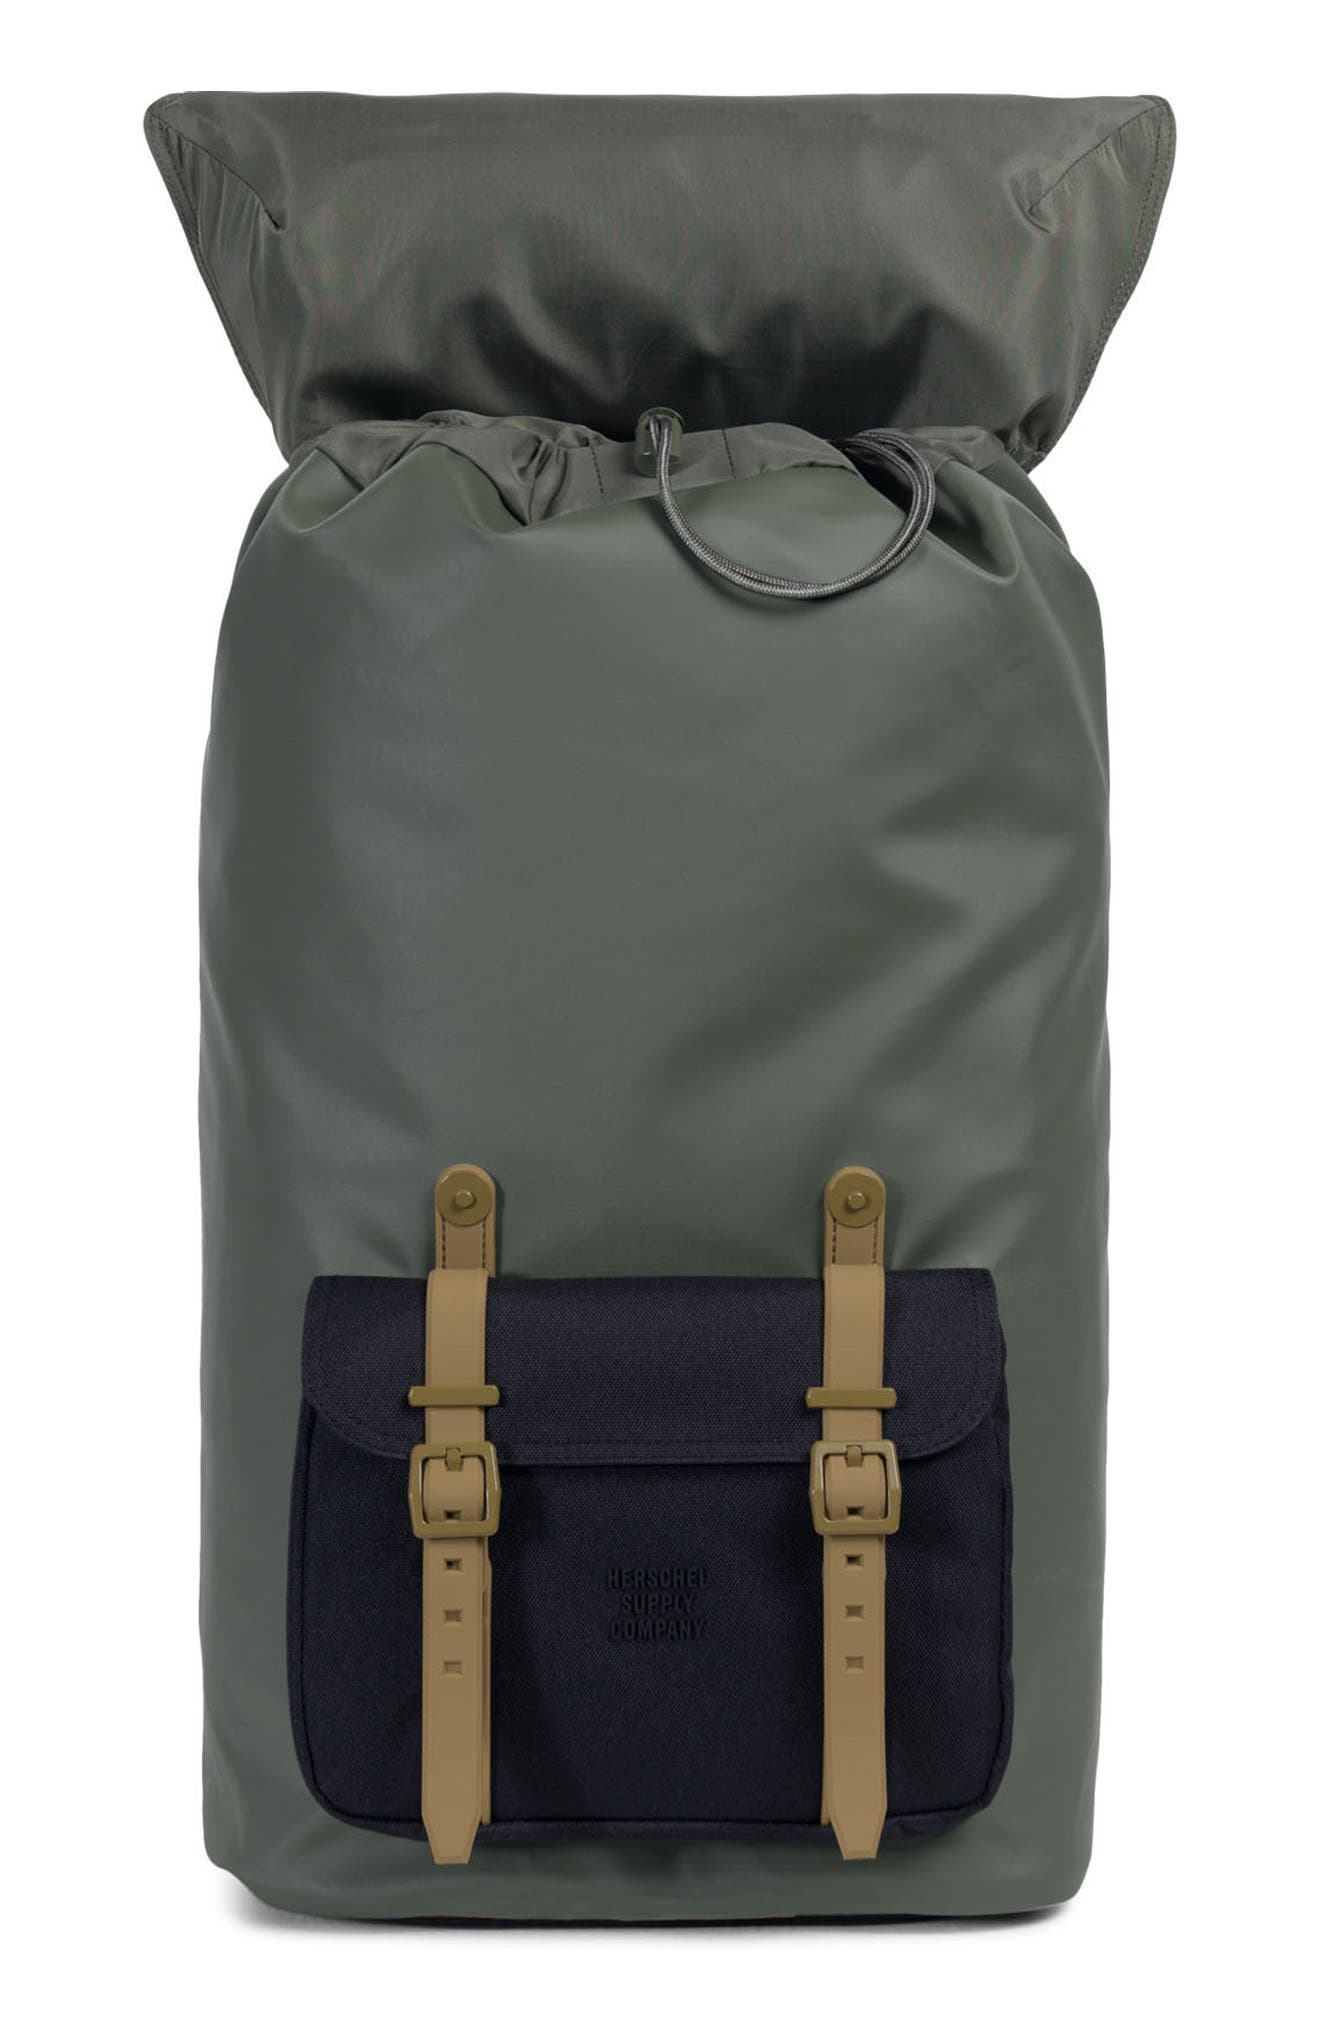 Little America Studio Collection Backpack,                             Alternate thumbnail 3, color,                             Beetle/ Black/ Gothic Olive